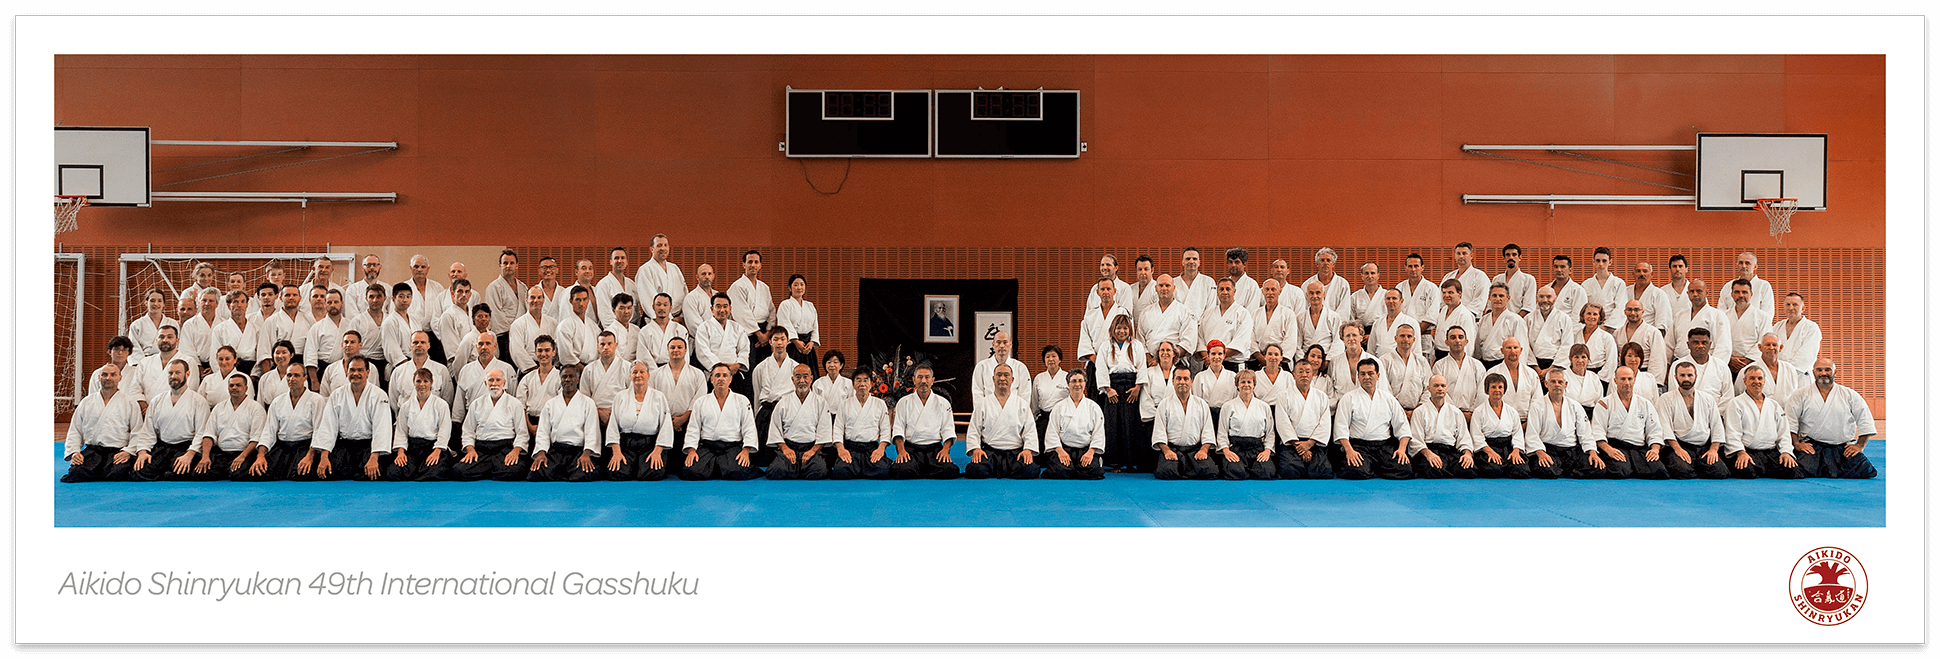 Aikido Shinryukan 49th International Gasshuku